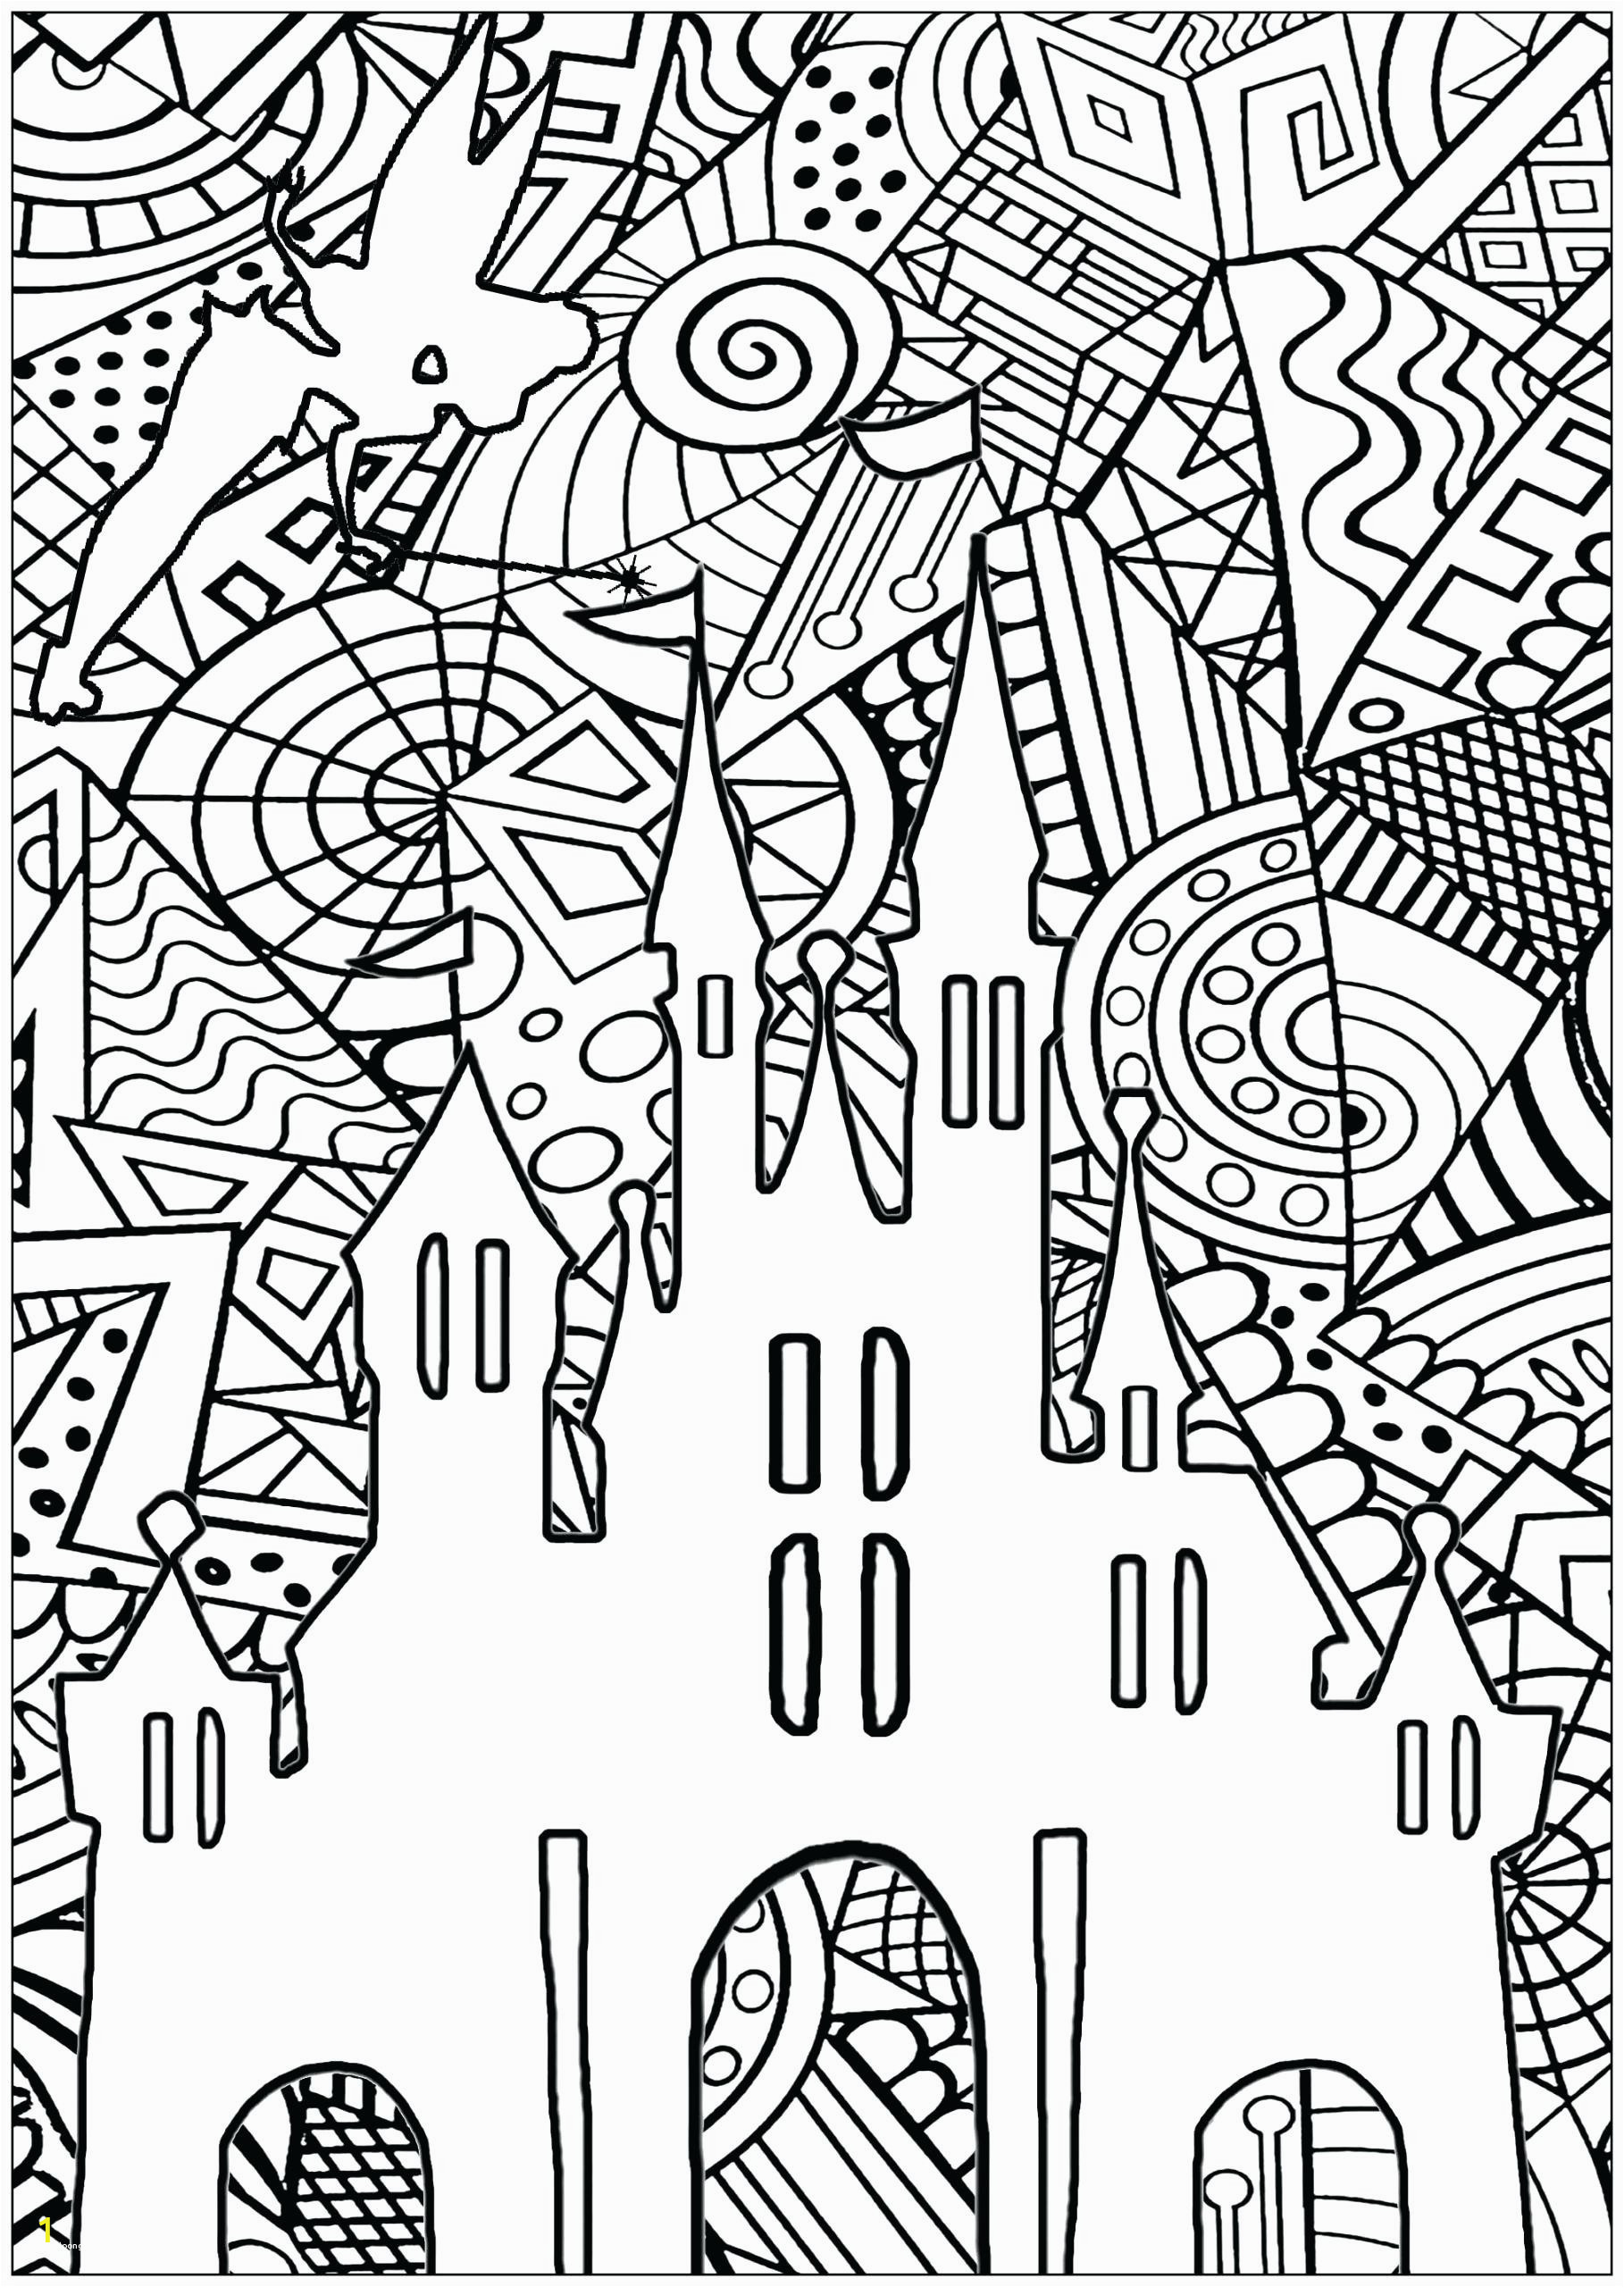 free online coloring pages for adults printable art disney coloring pages for adults heejin of free online coloring pages for adults printable